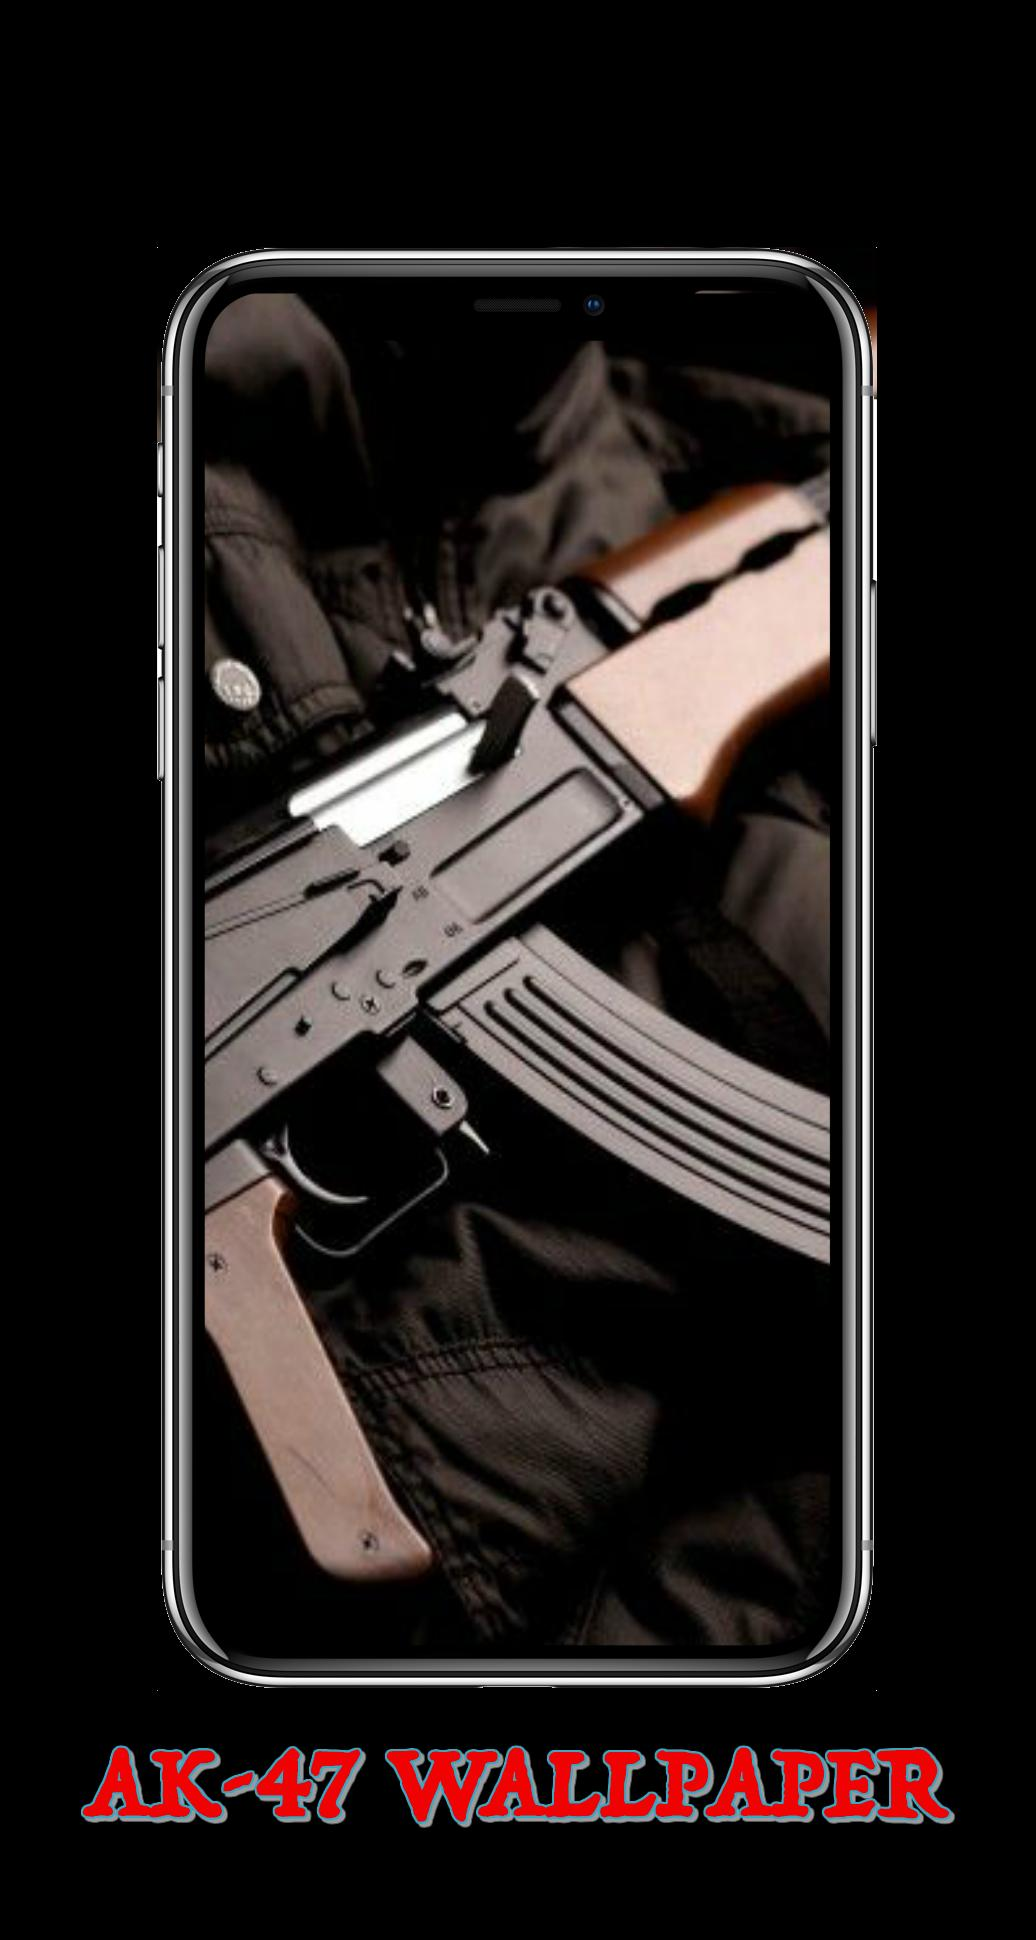 Ak-47 Wallpapers 2018 for Android - APK Download